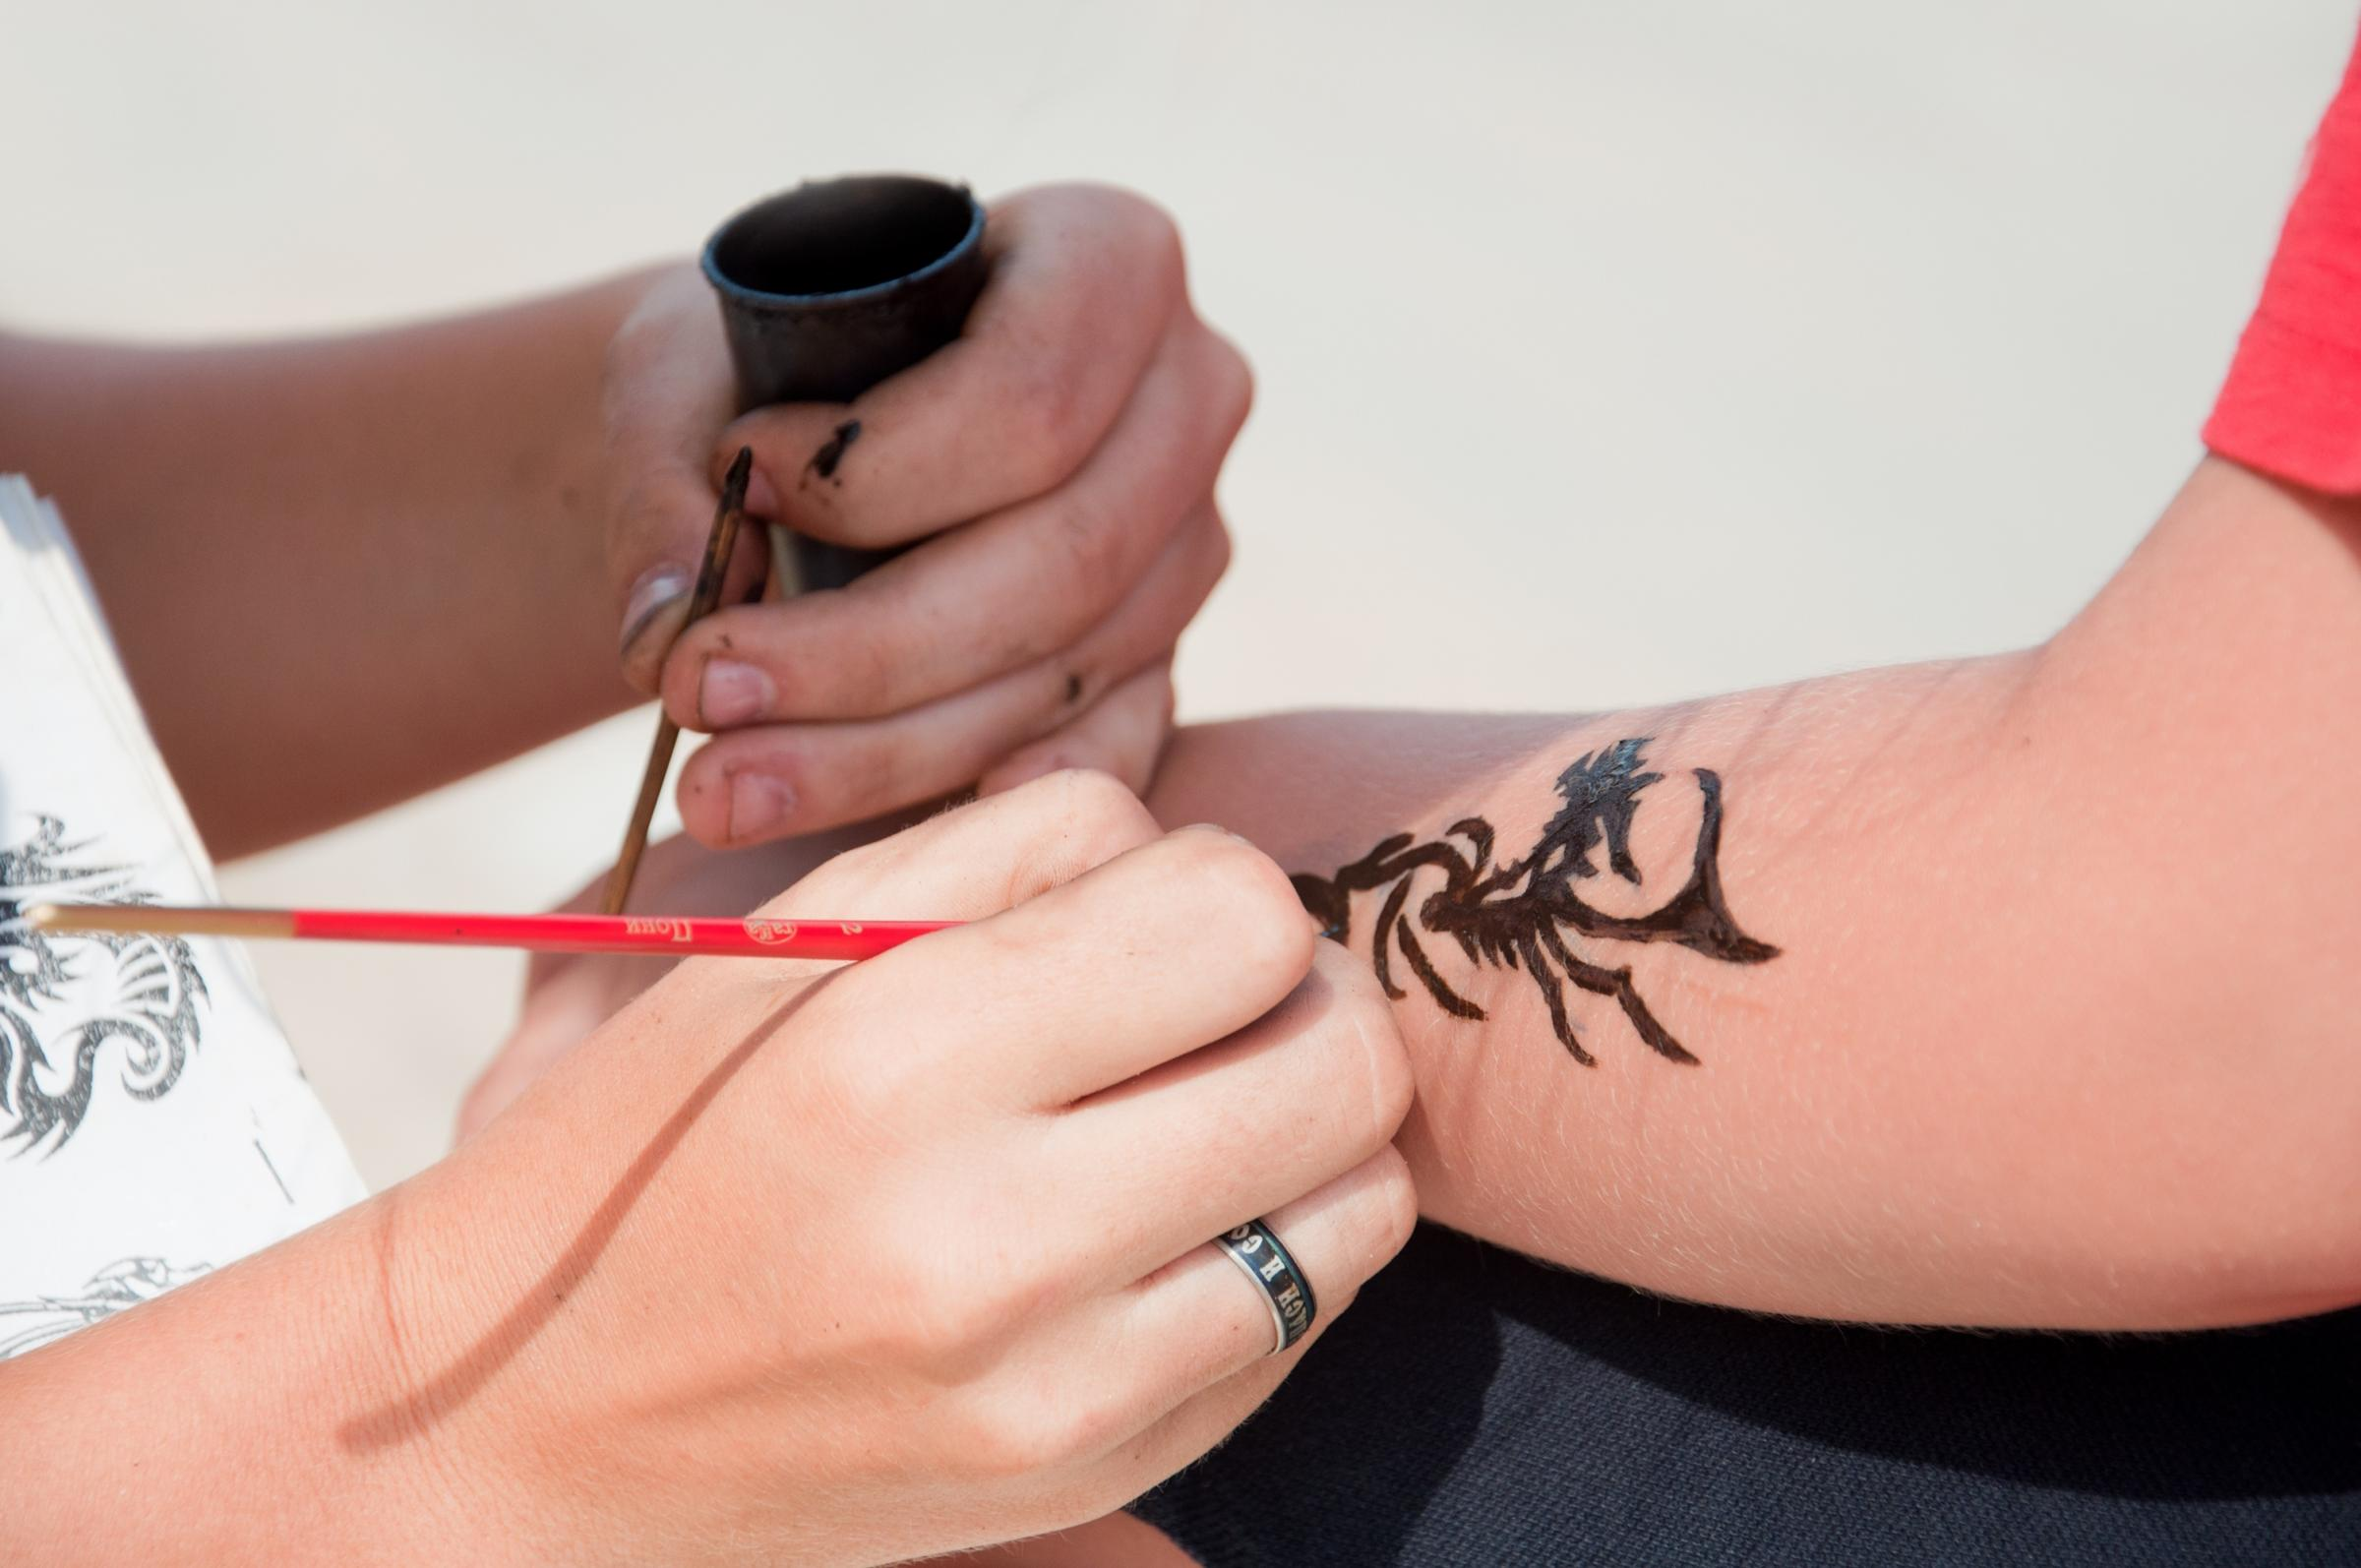 Henna tattoos could leave the user with a horrific allergic reaction